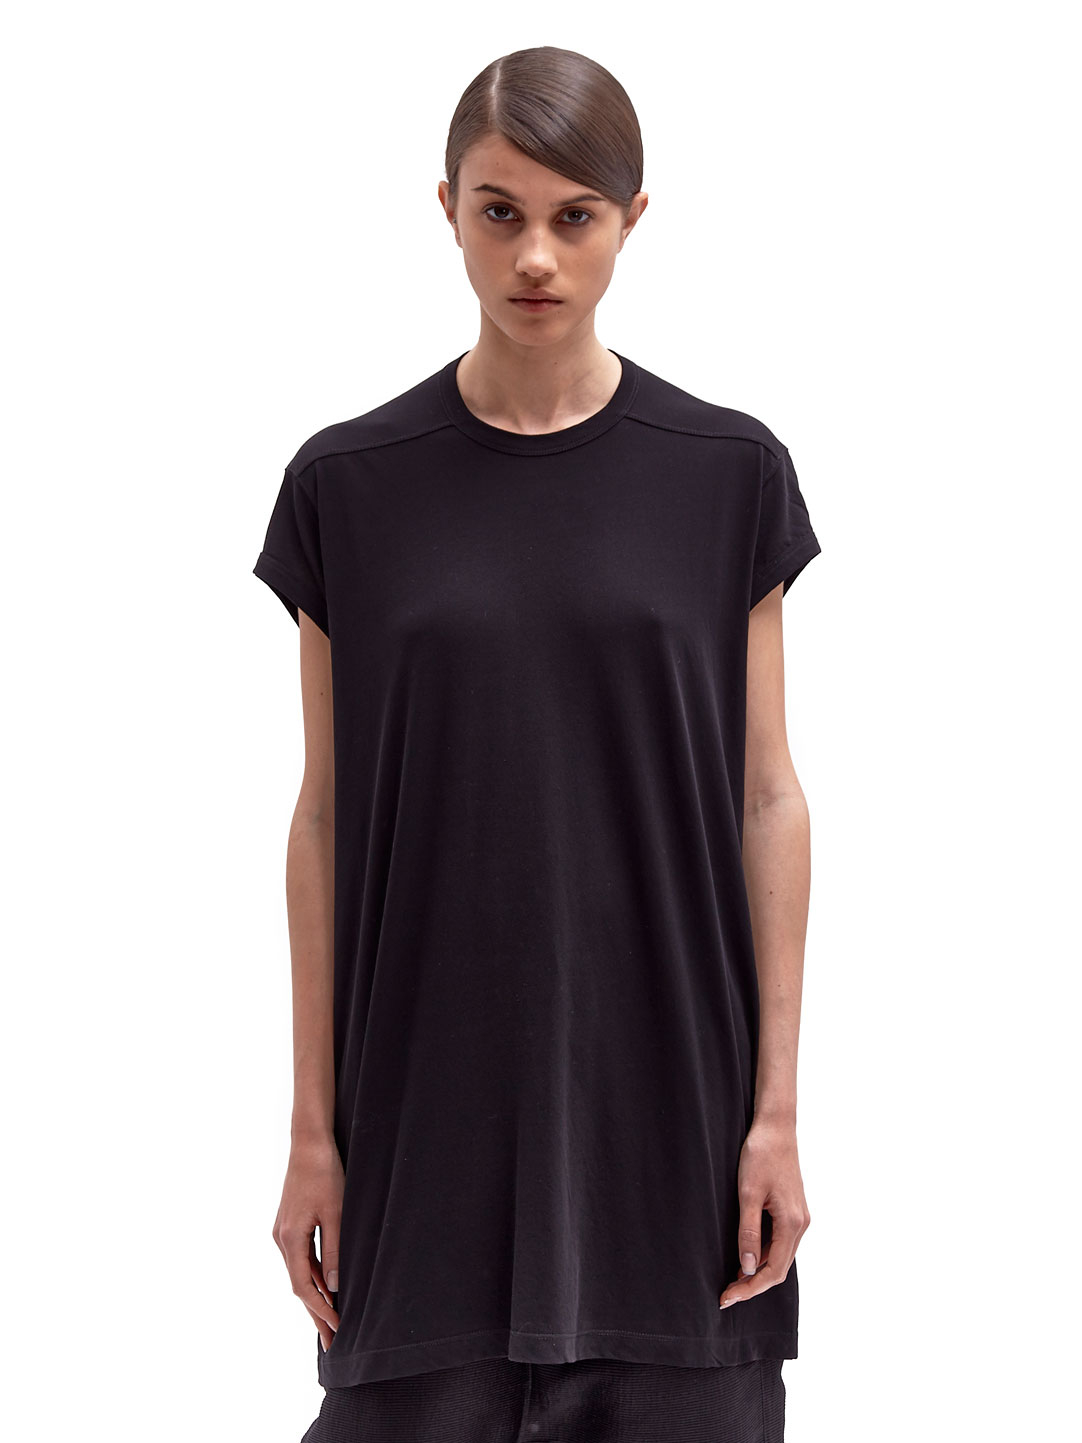 Black t shirt for ladies - Rick Owens Womens Oversized Capped Sleeve Tshirt In Black Lyst Rick Owens Womens Oversized Capped Sleeve Tshirt In Black Lyst